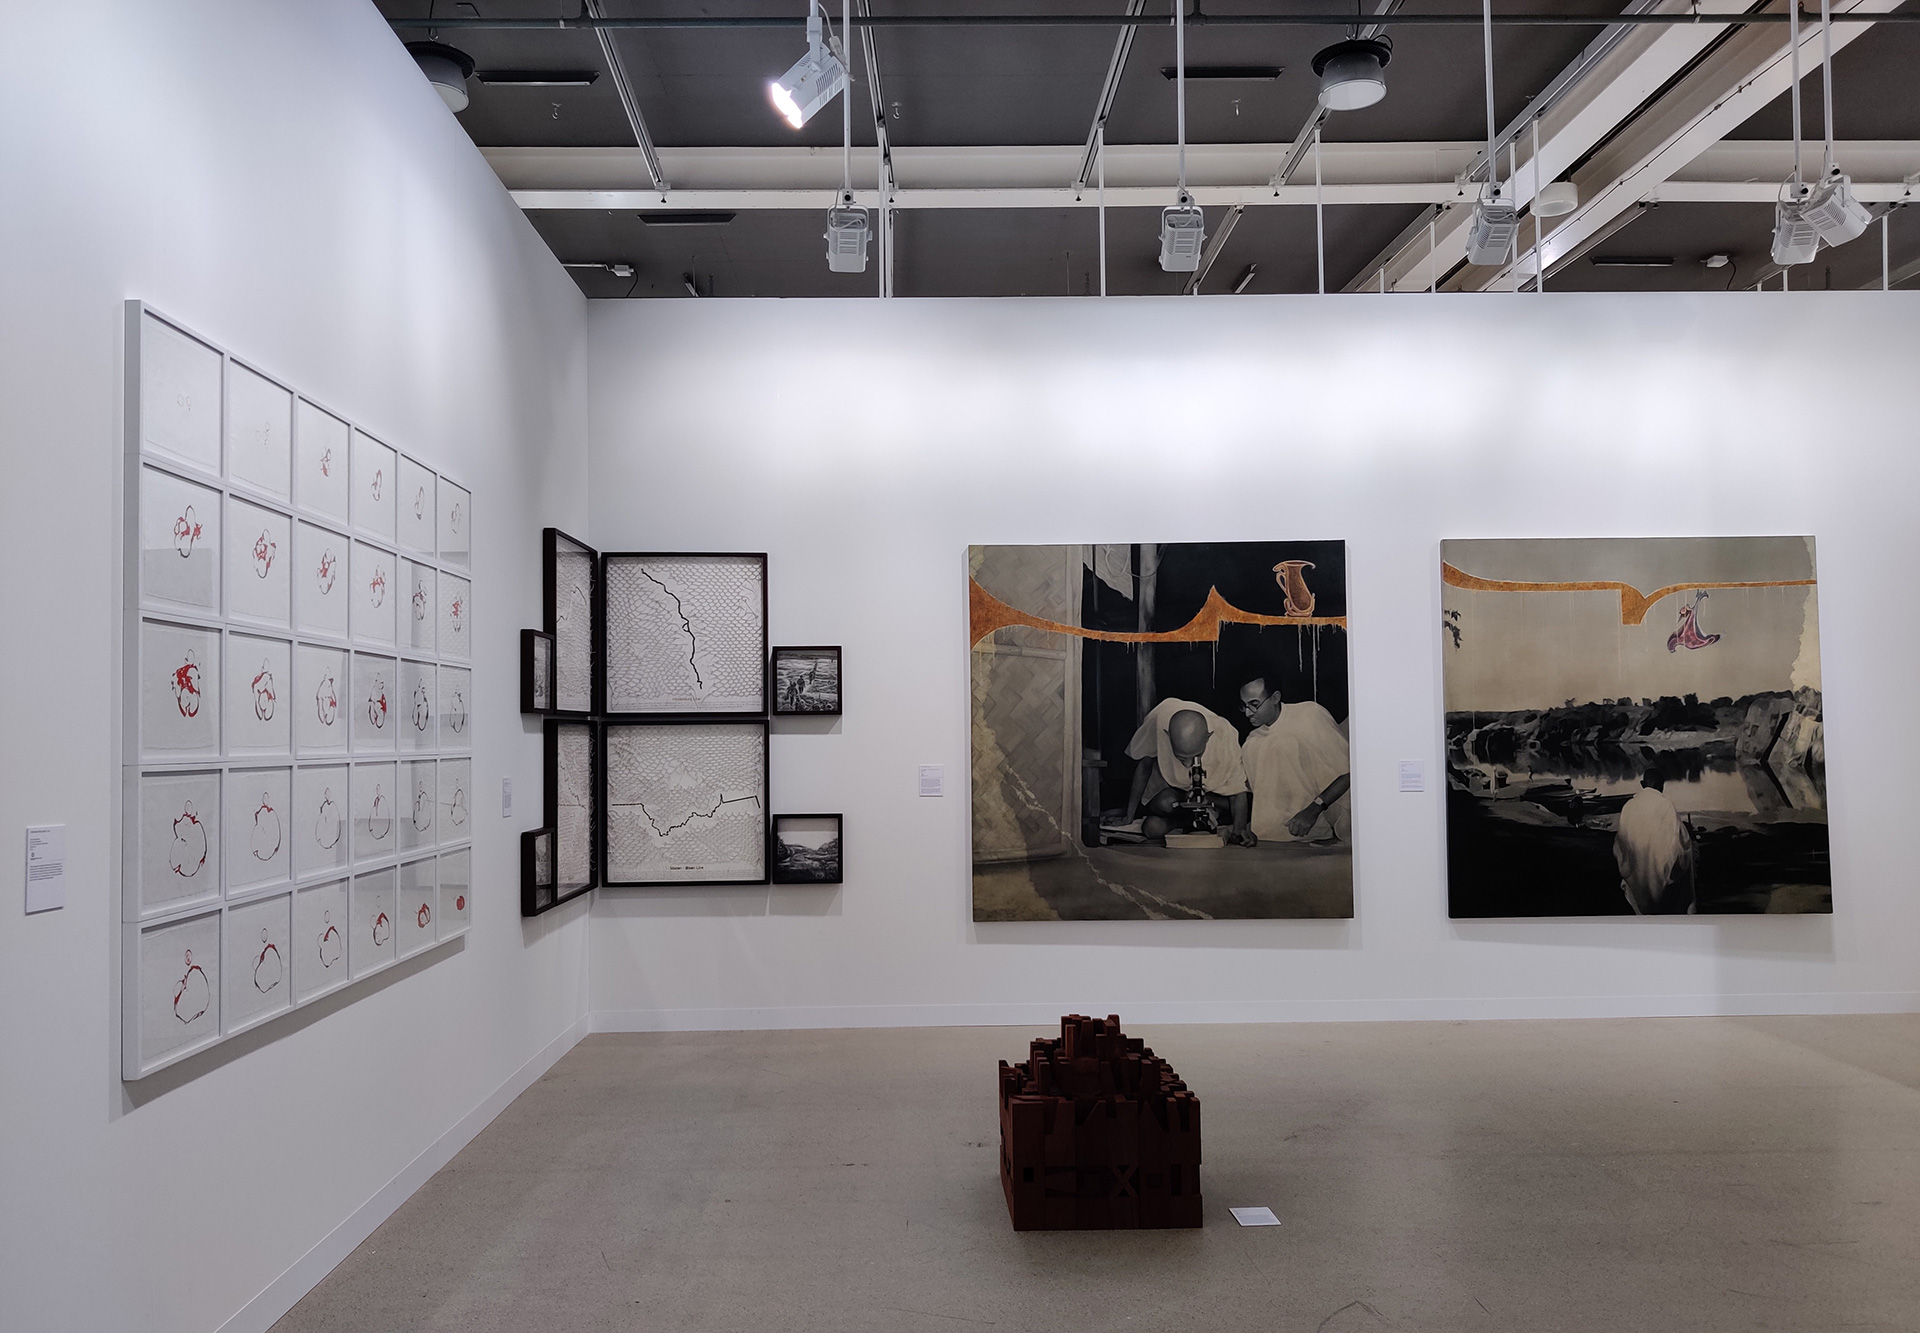 Chemould Prescott featured the works of artist Atul Dodiya and Bhuvesh Gowda, Reena Saini Kallat and Ritesh Meshram, Shilpa Gupta Yardendra Kurulkar and Mithu Sen| Art Basel| Switzerland| STIR